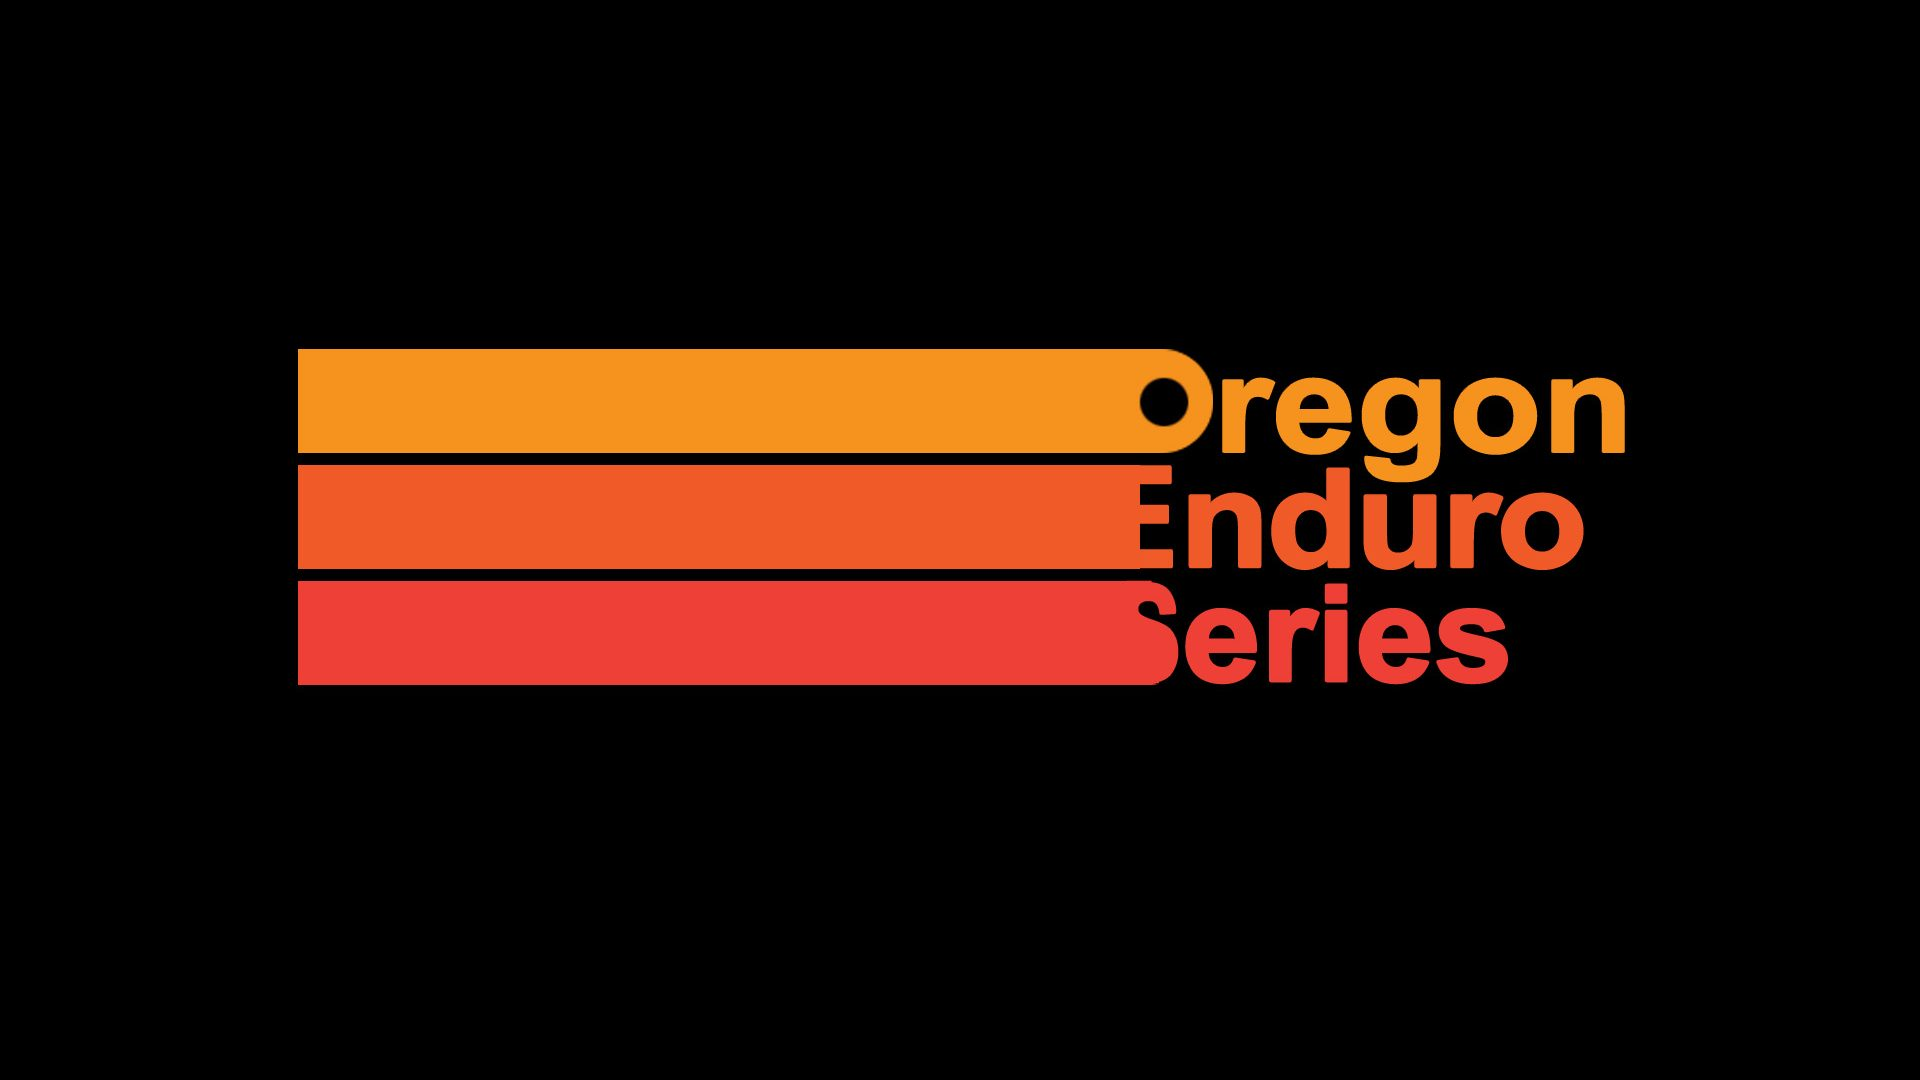 Oregon Enduro Series